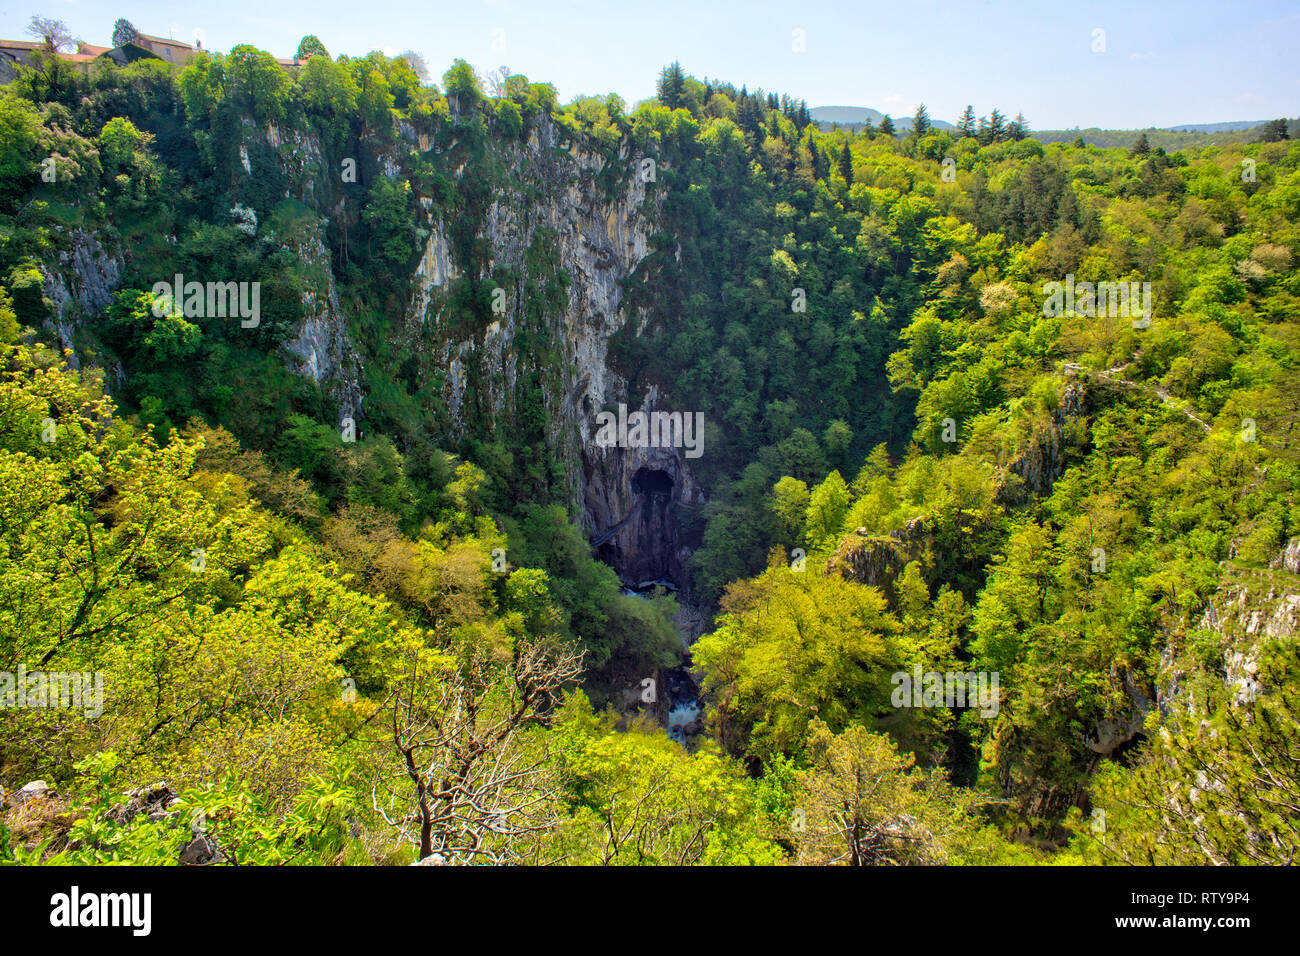 Unesco World Heritage Site Skocjanske Jame Looking Towards The Deep Gorge With Cave Entrance And Walking Paths Village Of Skocjan In The Background Stock Photo Alamy